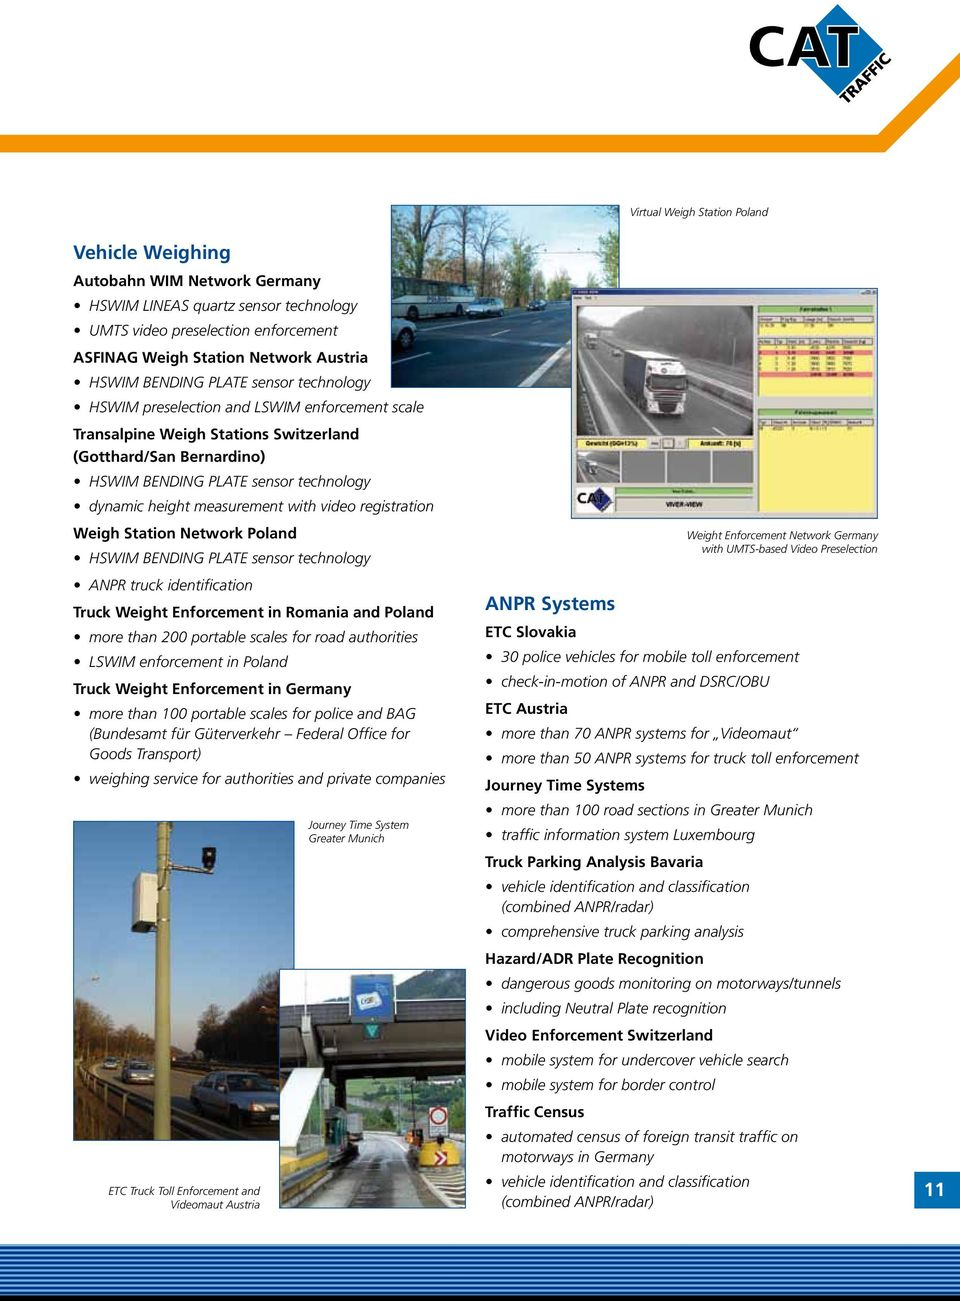 measurement with video registration Weigh Station Network Poland HSWIM BENDING PLATE sensor technology ANPR truck identification Truck Weight Enforcement in Romania and Poland more than 200 portable